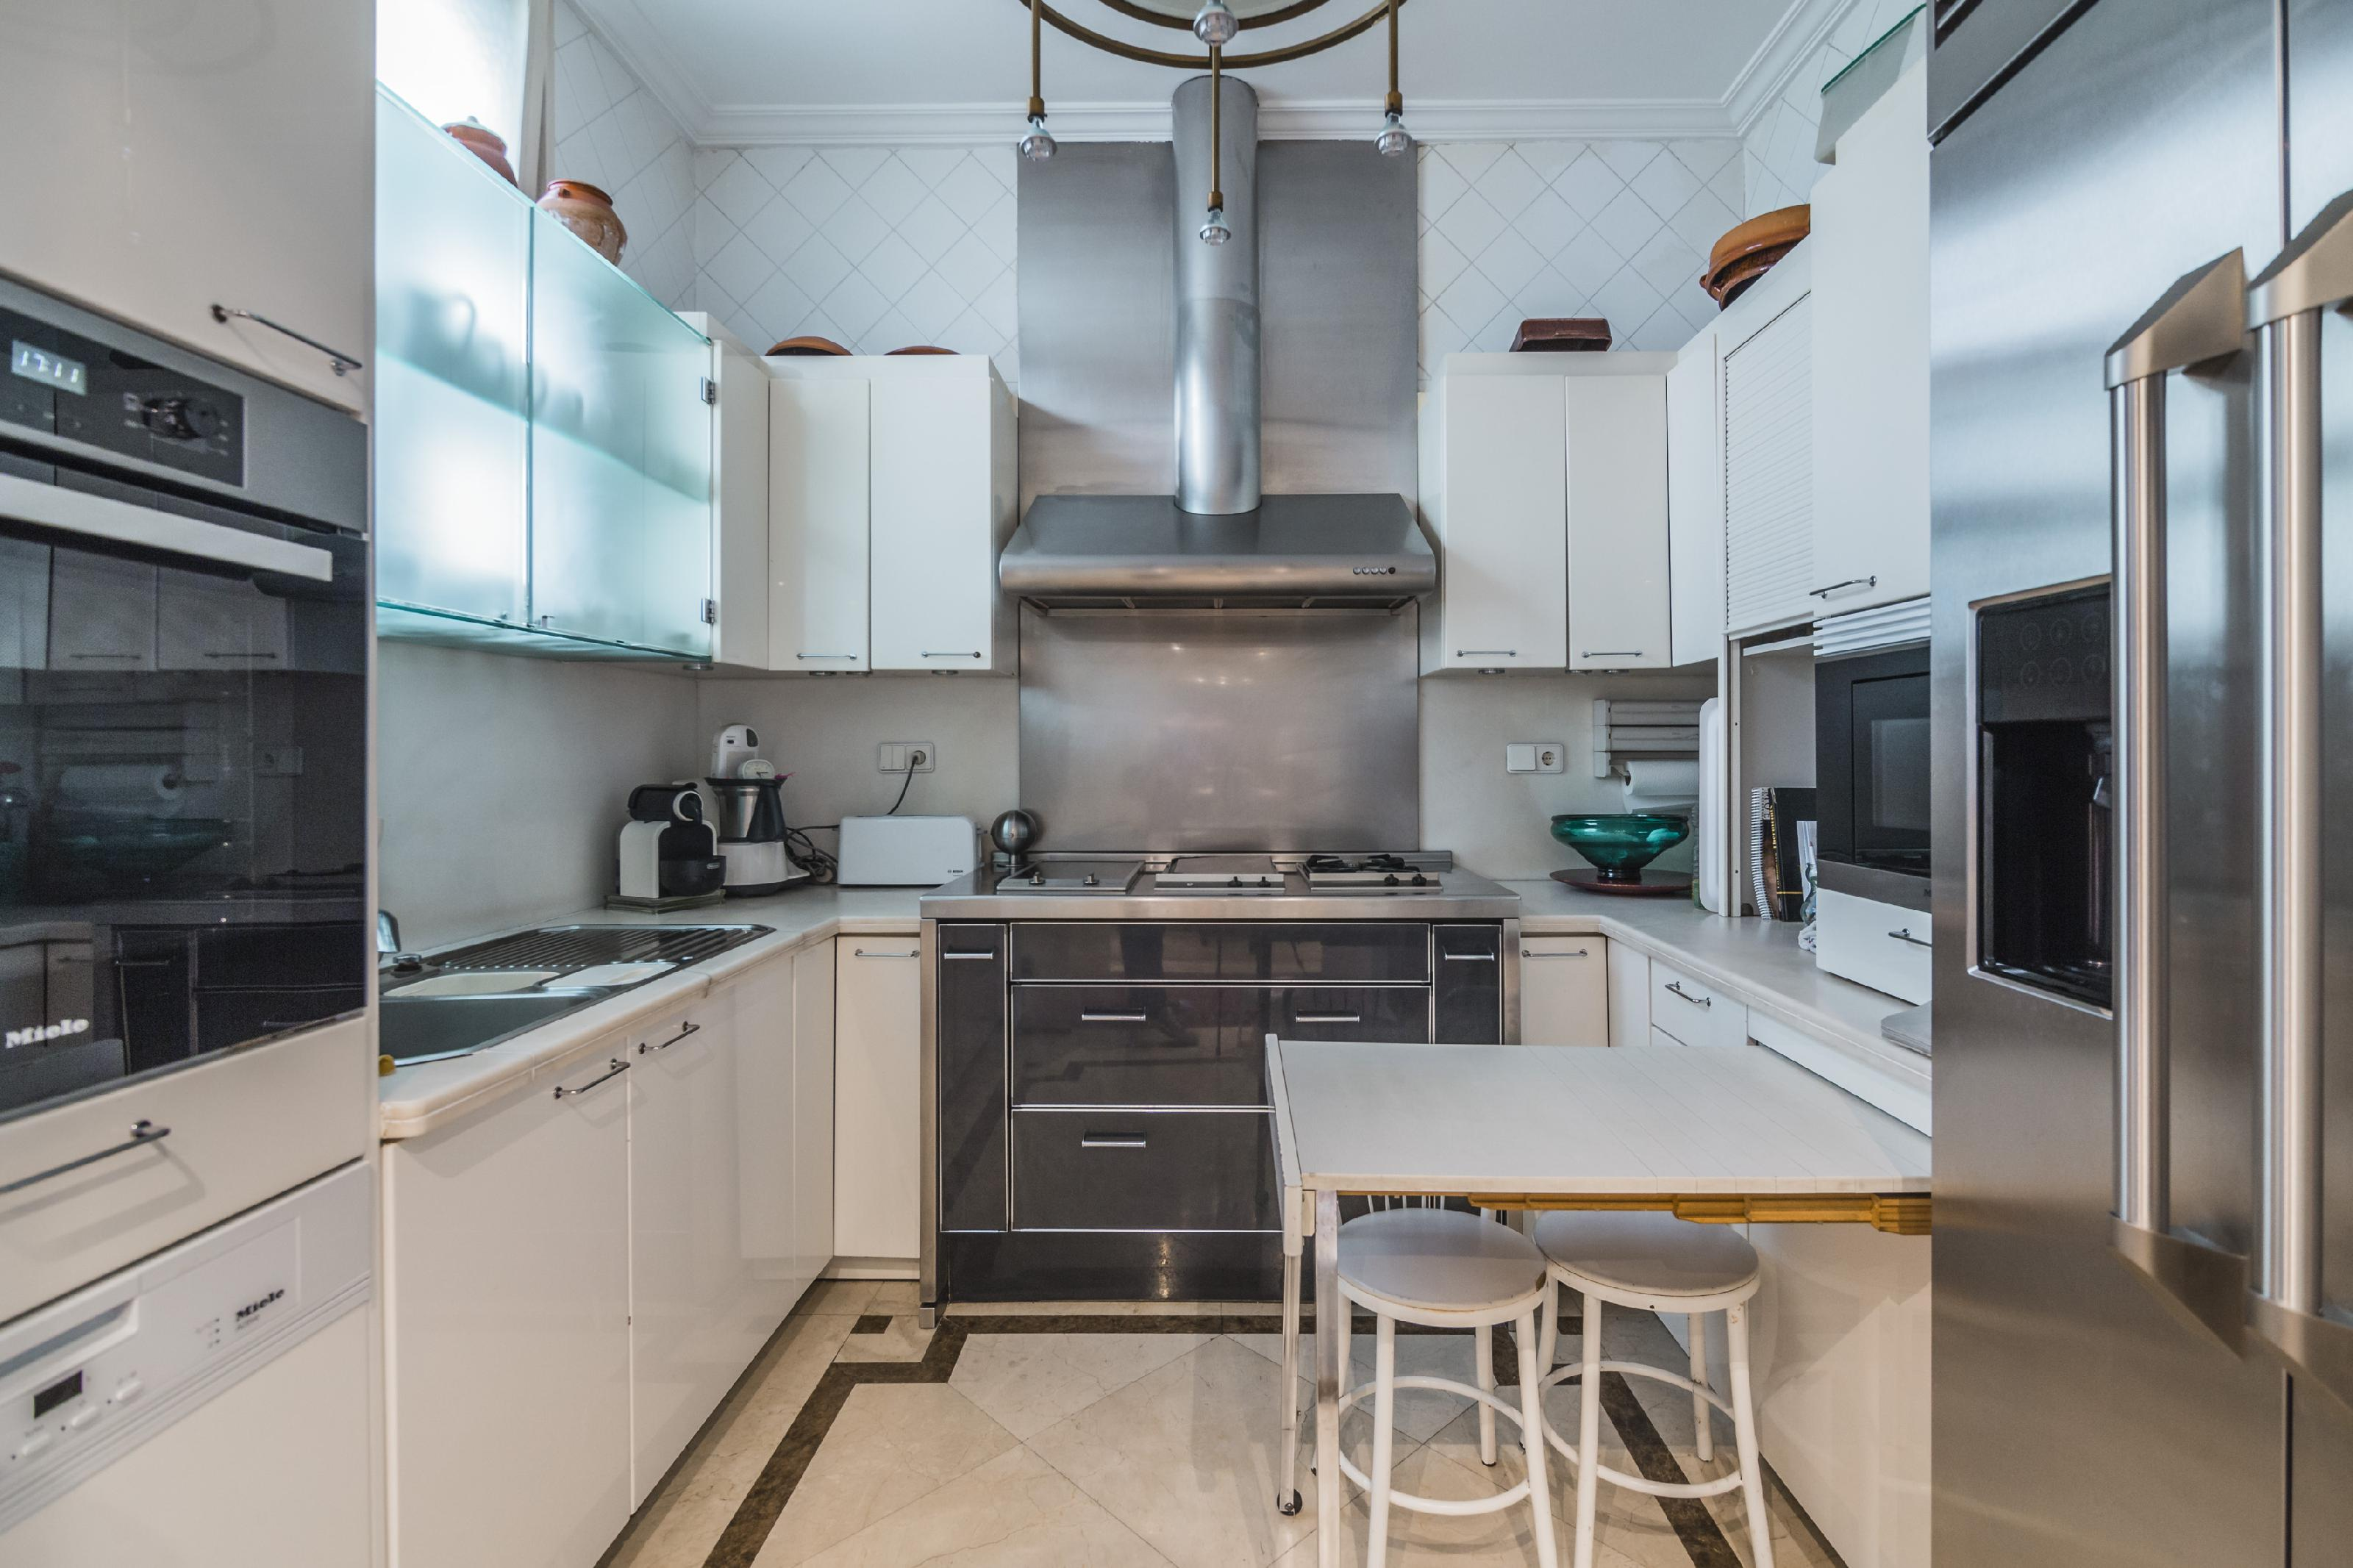 87800 Apartment for sale in Eixample, Dreta Eixample 11